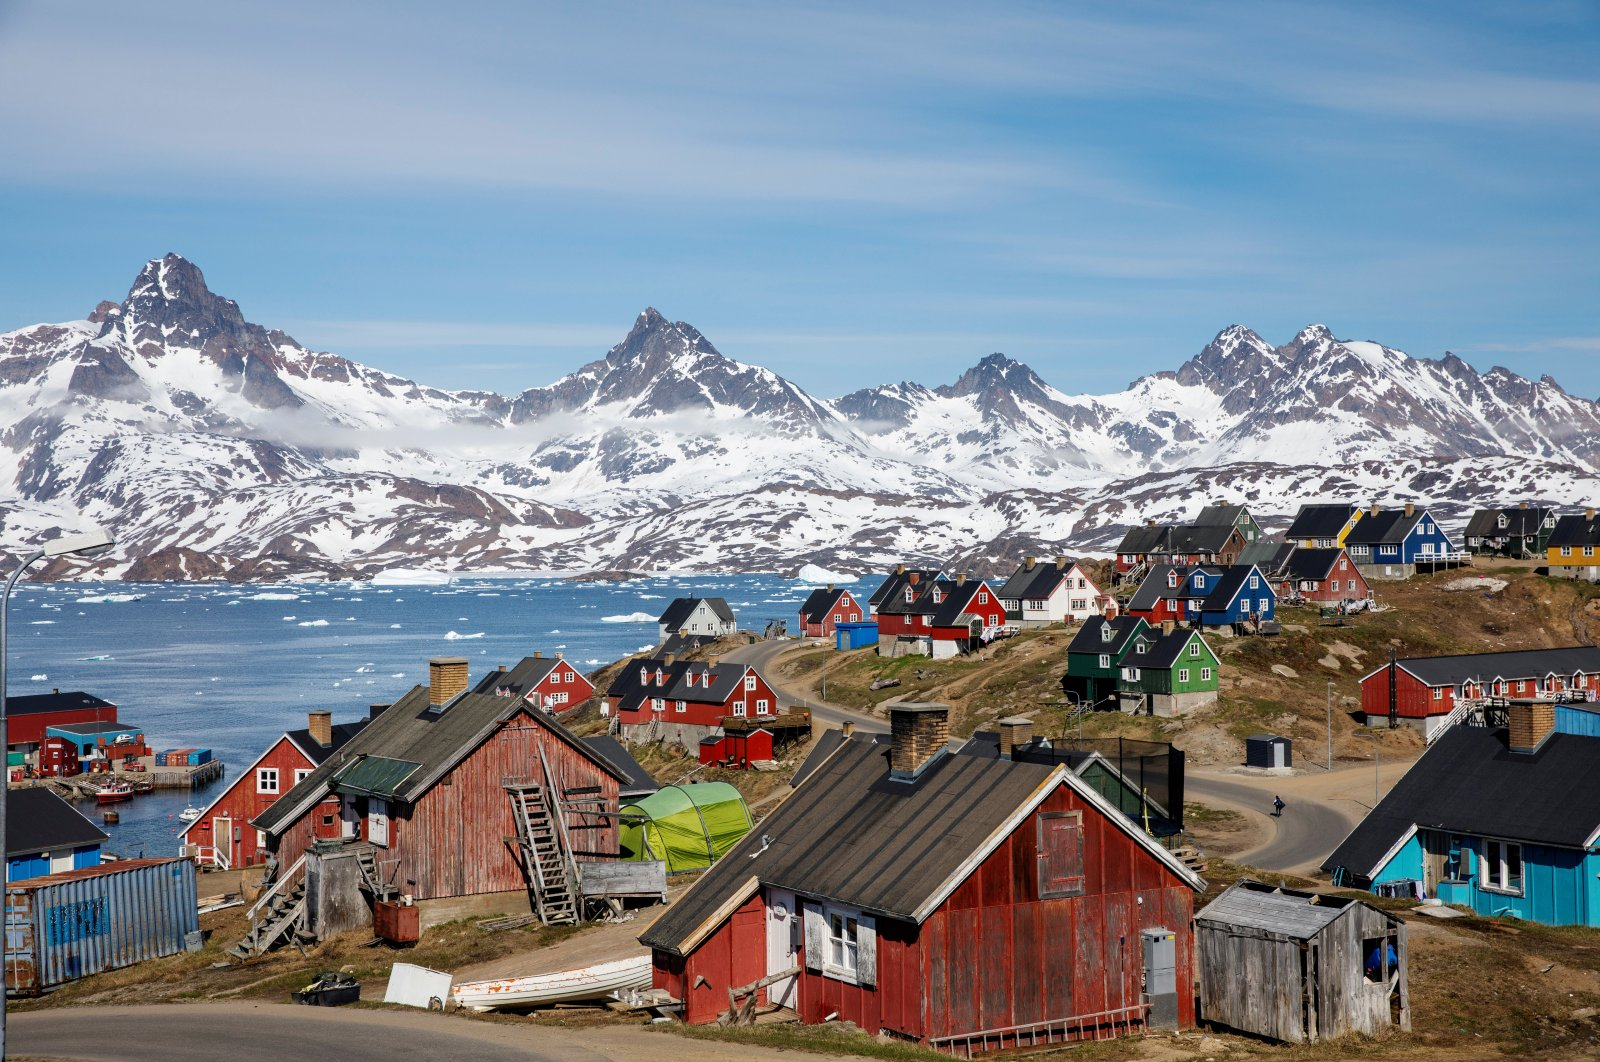 Snow covered mountains rise above the harbor and town of Tasiilaq, Greenland, June 15, 2018. (Reuters Photo)